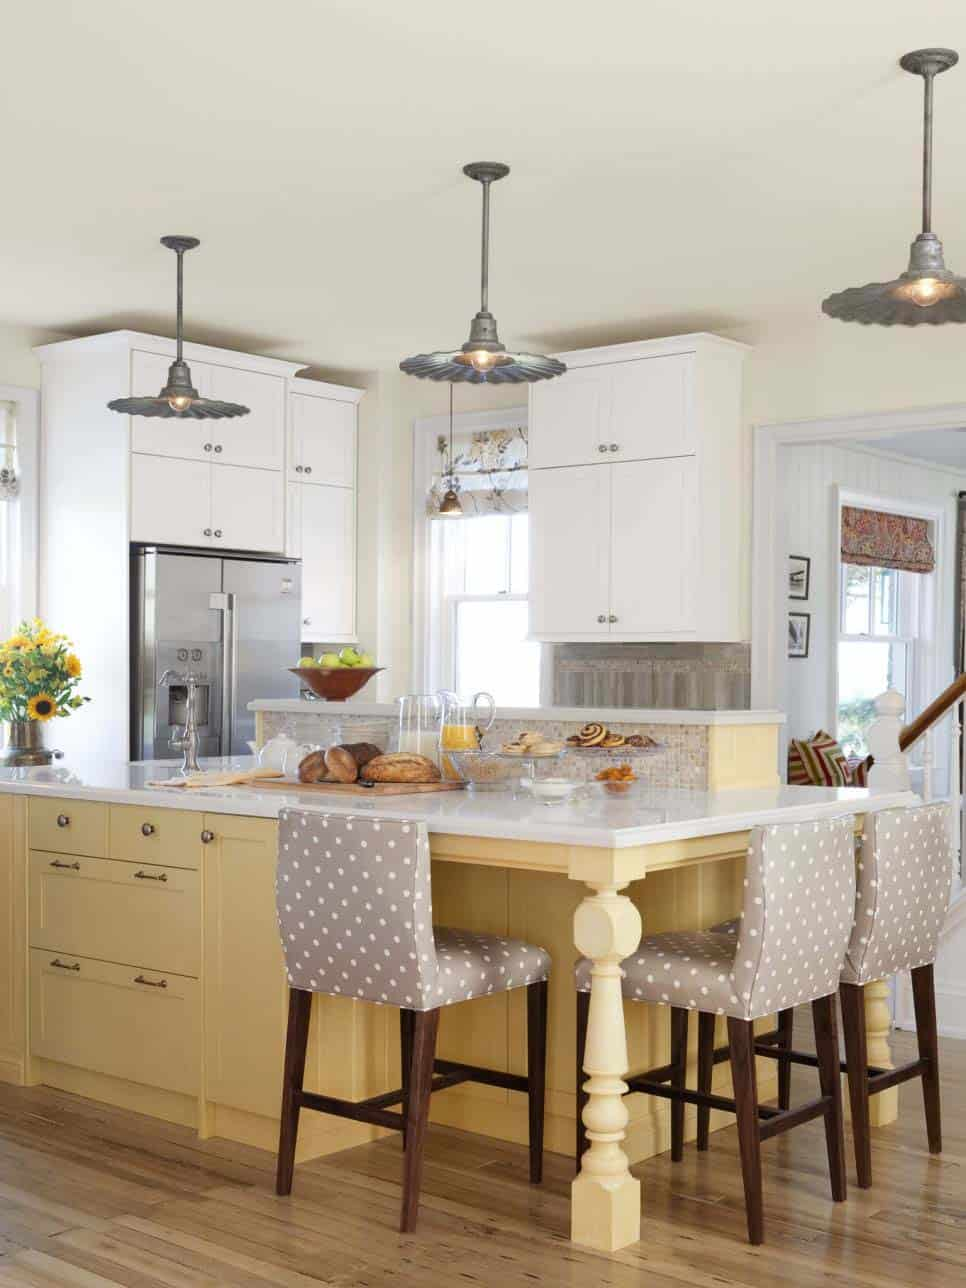 How To Make Kitchen Snack Bar From Cabinets